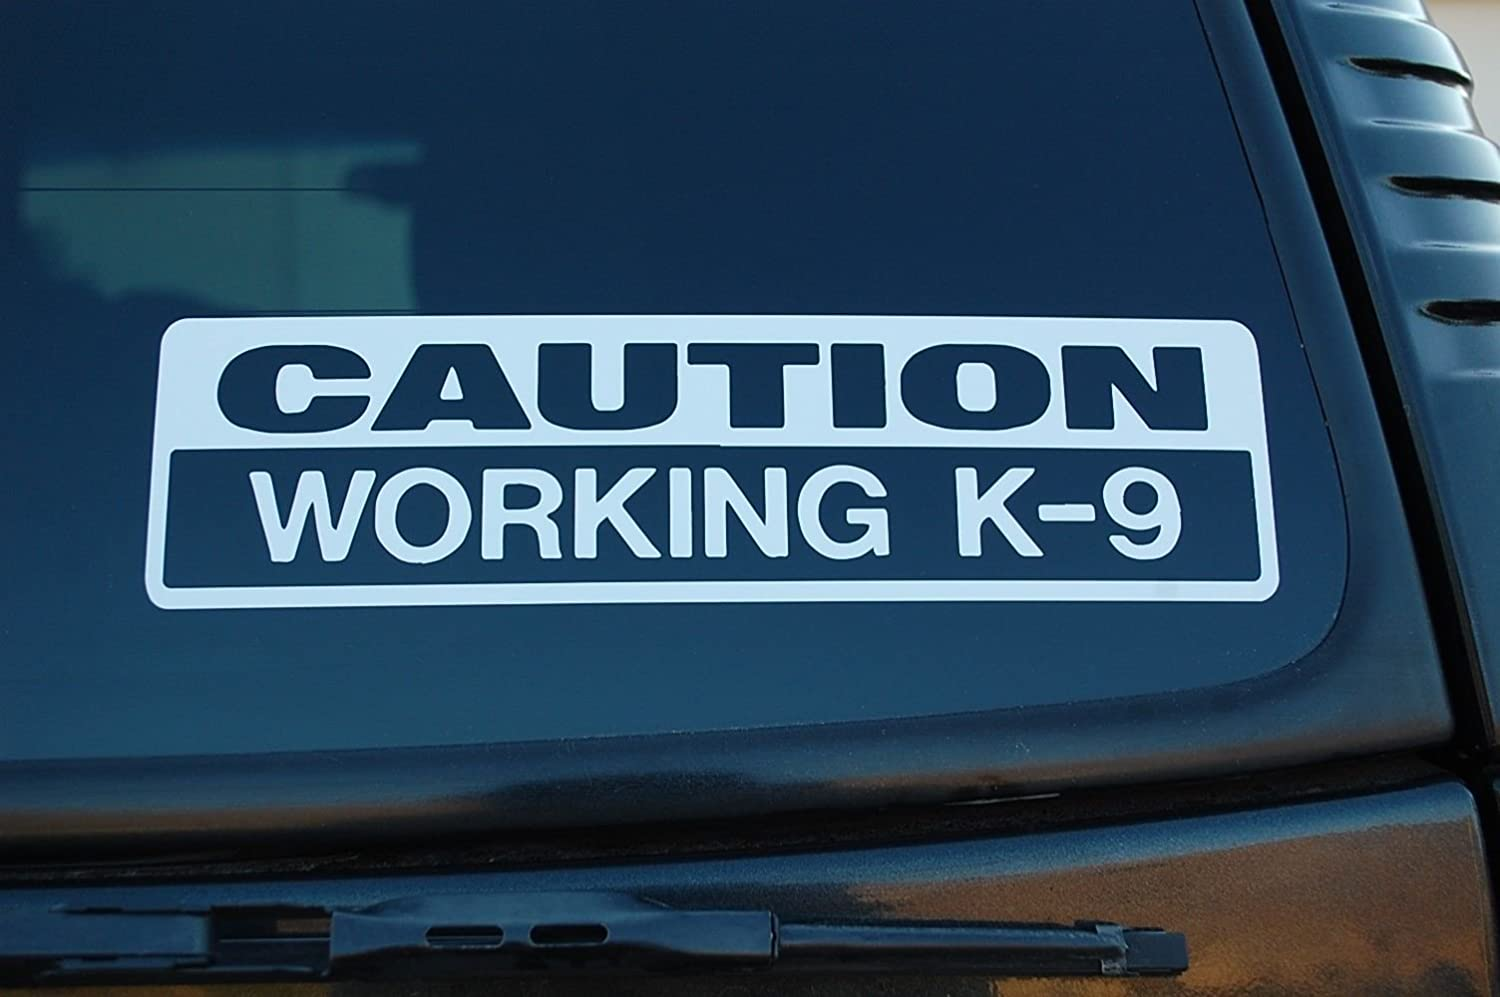 Caution K 9 Stickers For Car